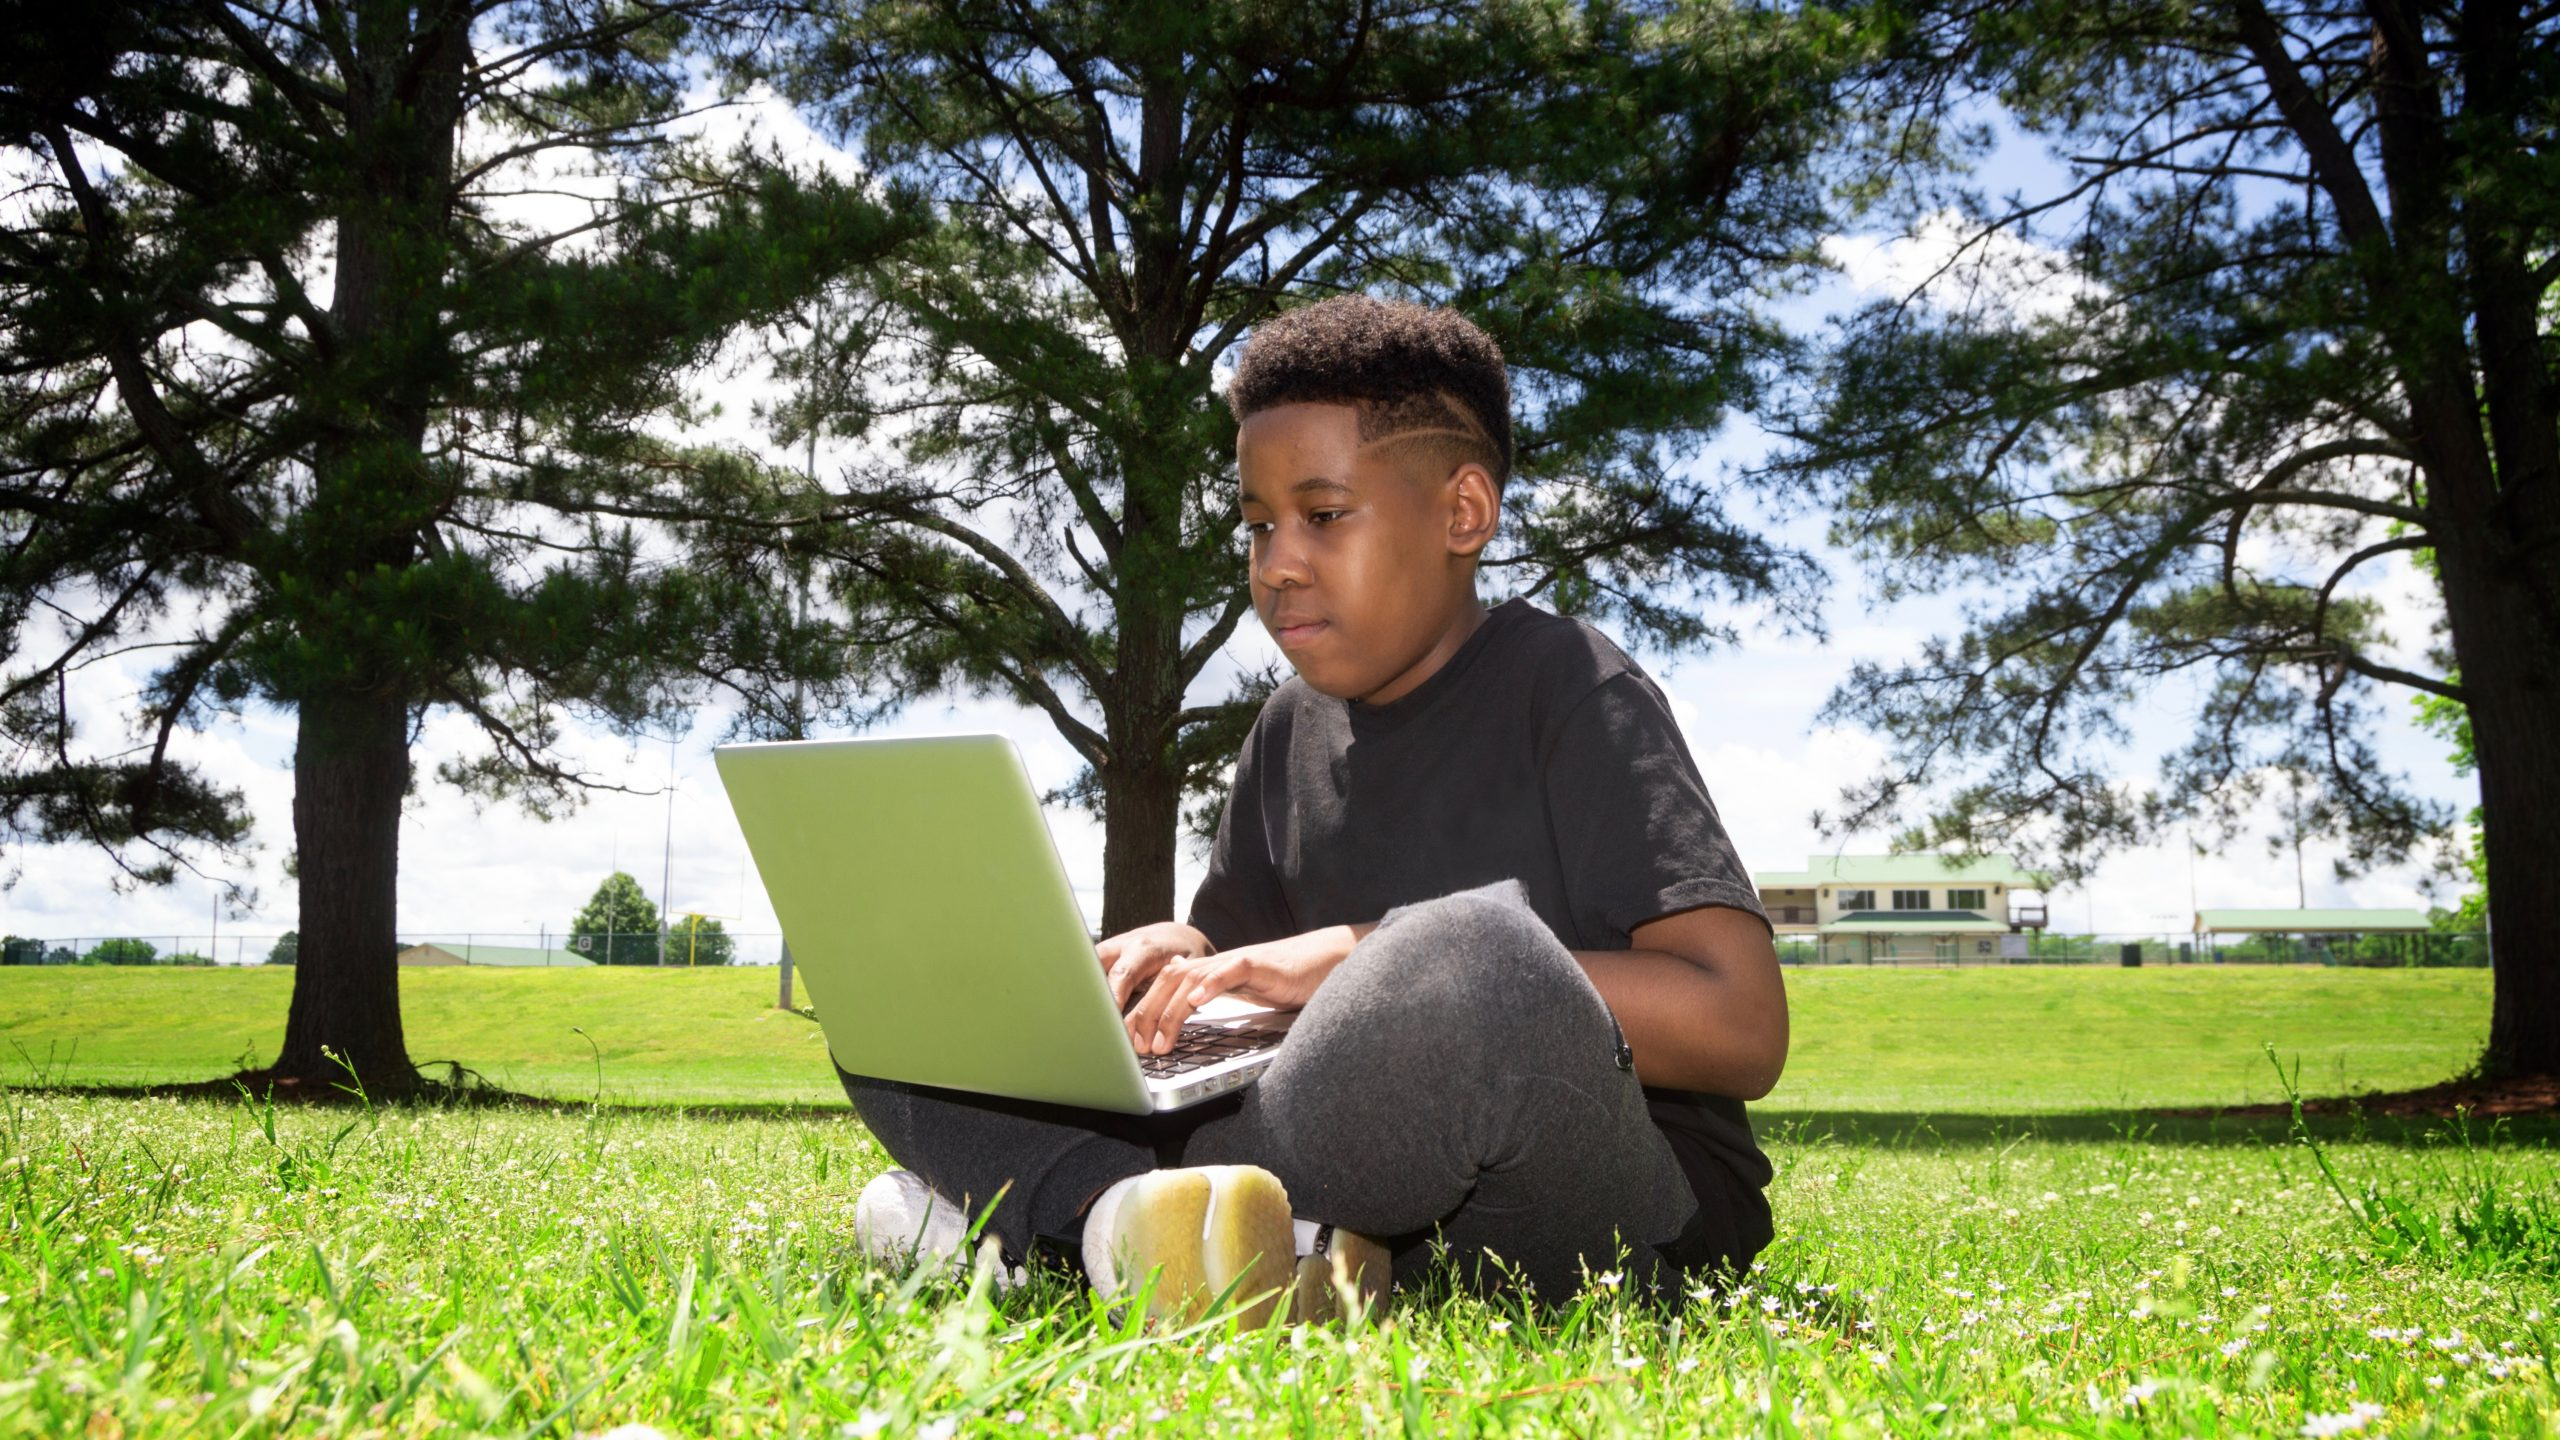 Student sitting in a grassy park doing online summer school with a laptop.